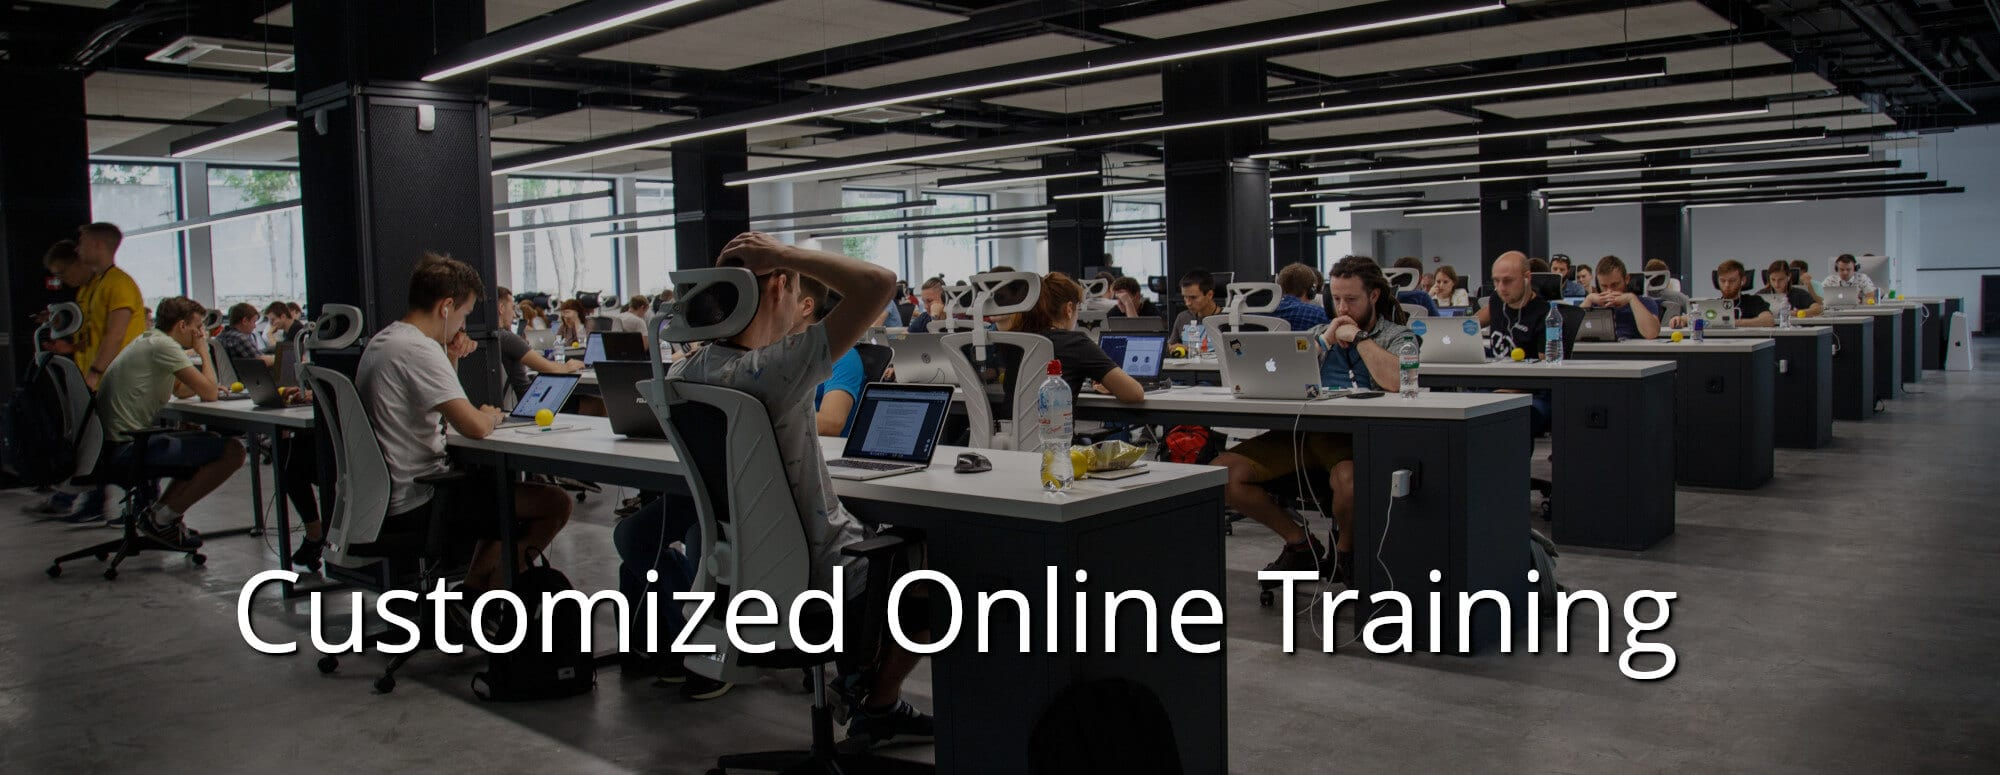 Customized Online Training - The Exceptional Skills